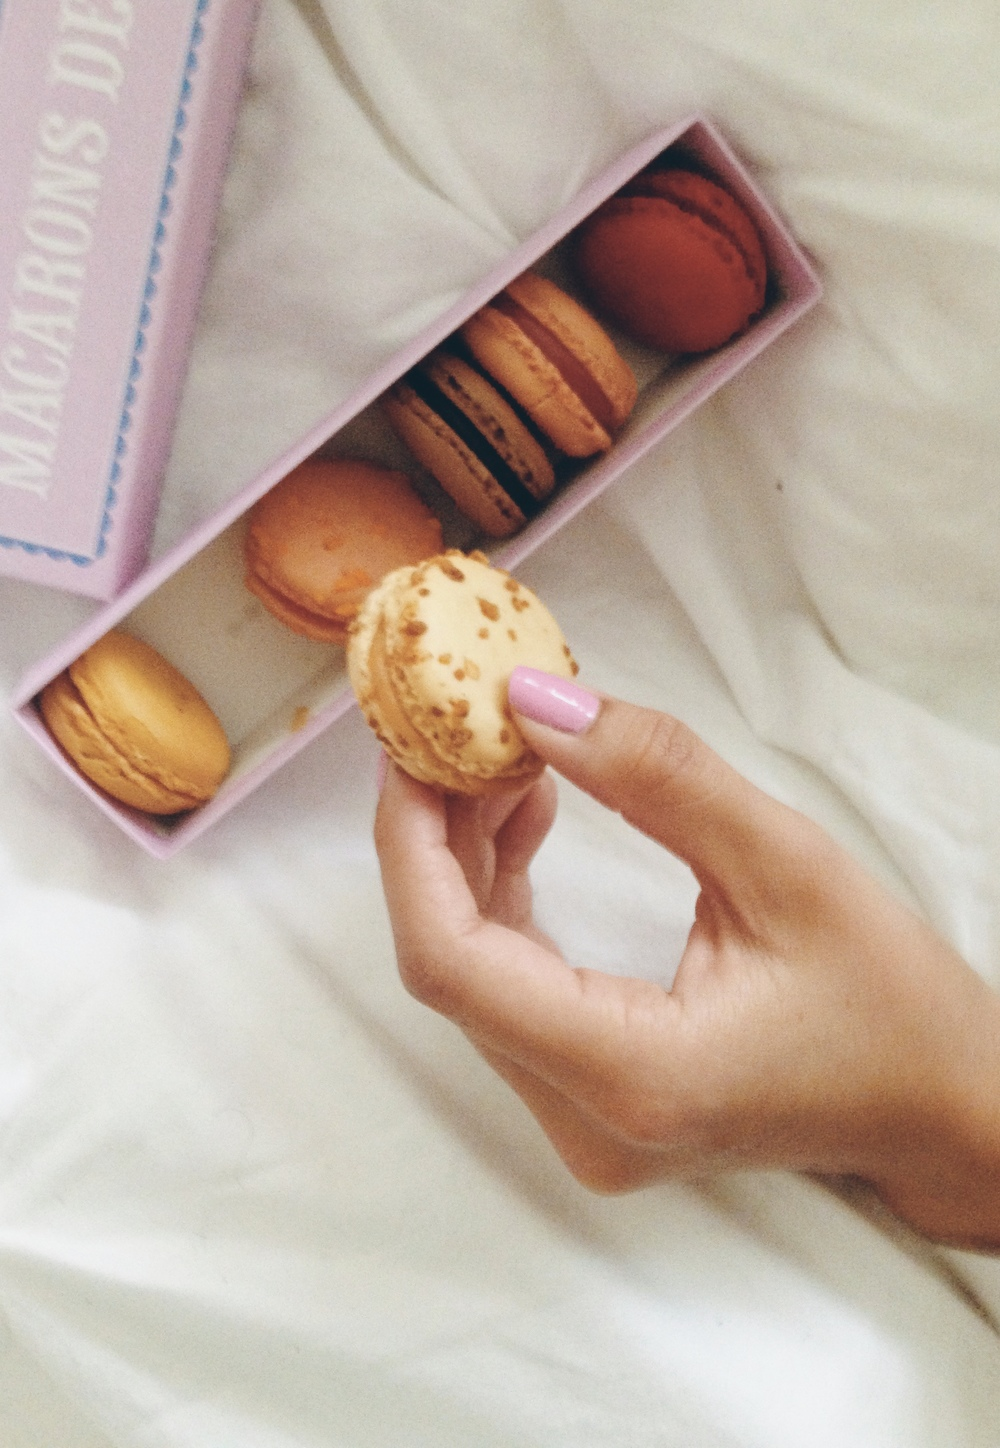 Macaroons in bed. I almost want to vom at this cliche, blogger moment.